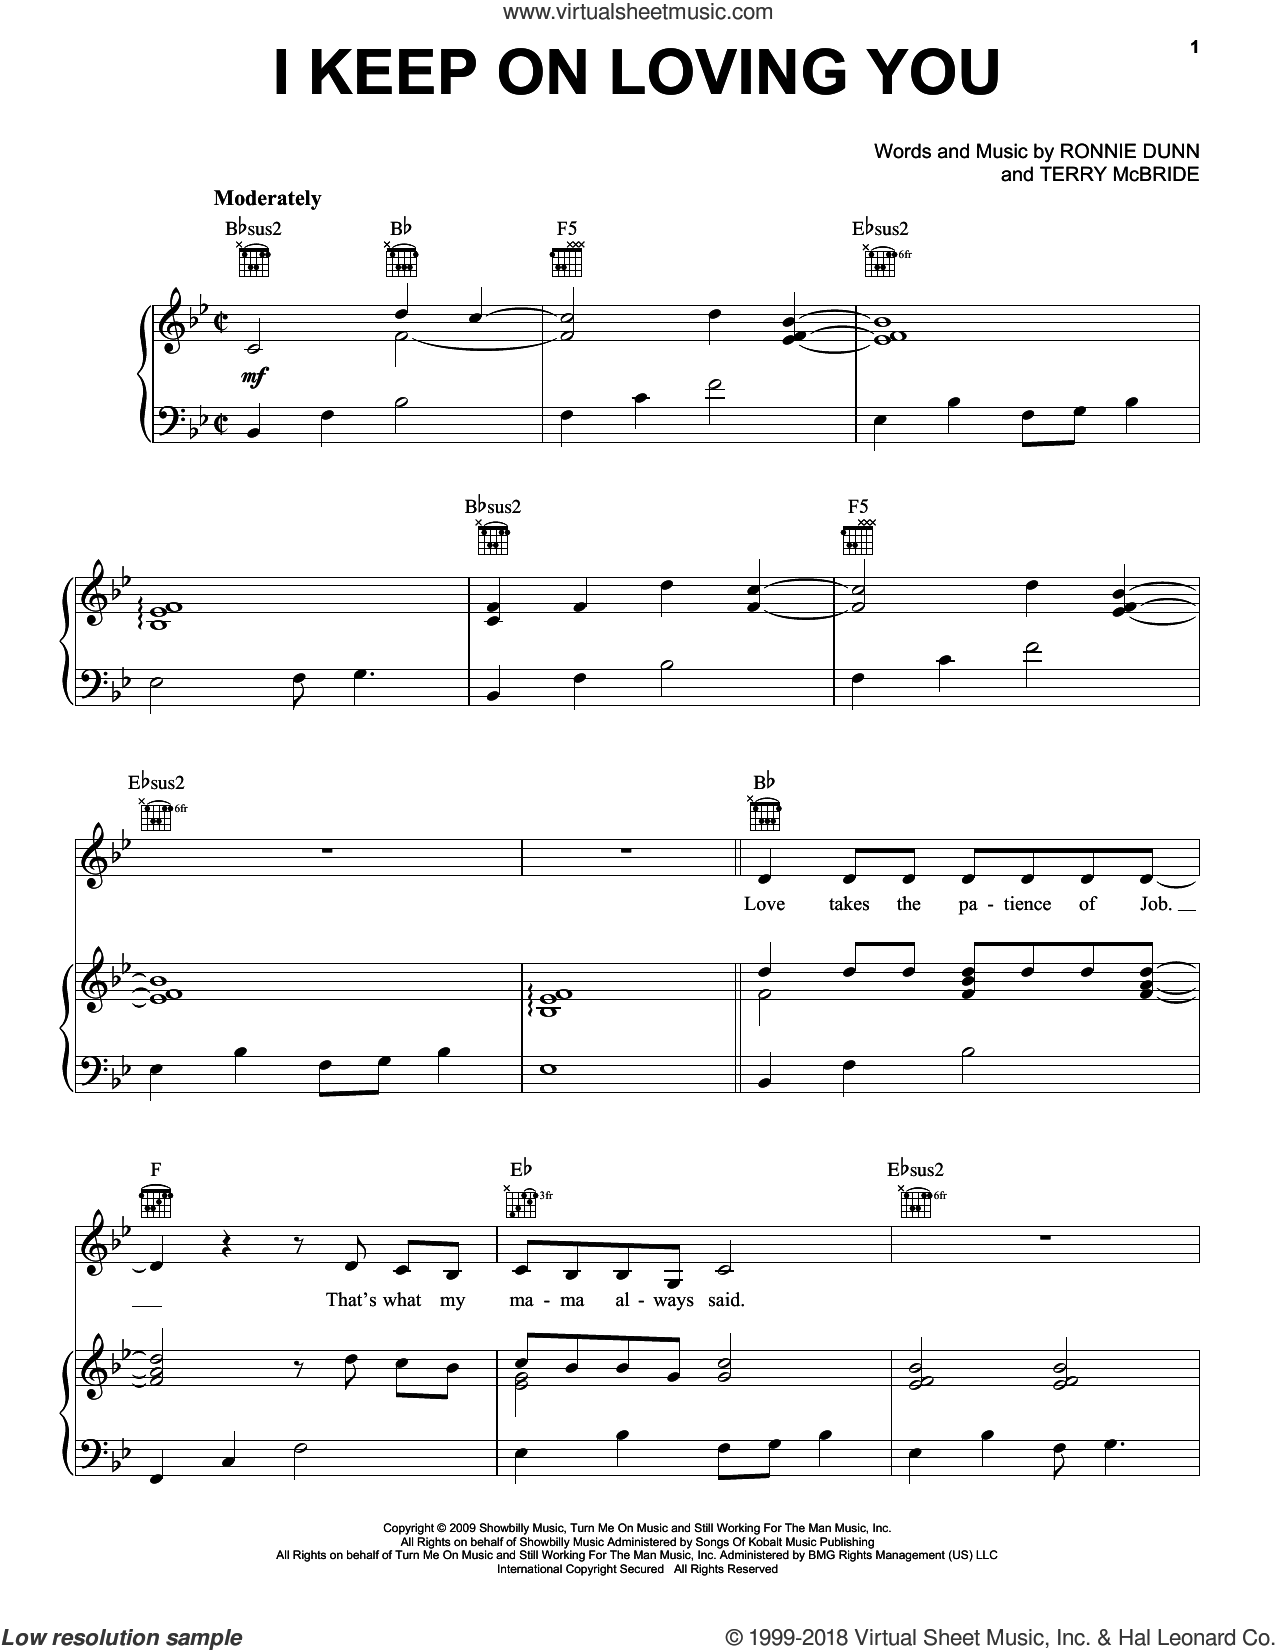 I Keep On Loving You sheet music for voice, piano or guitar by Terry McBride